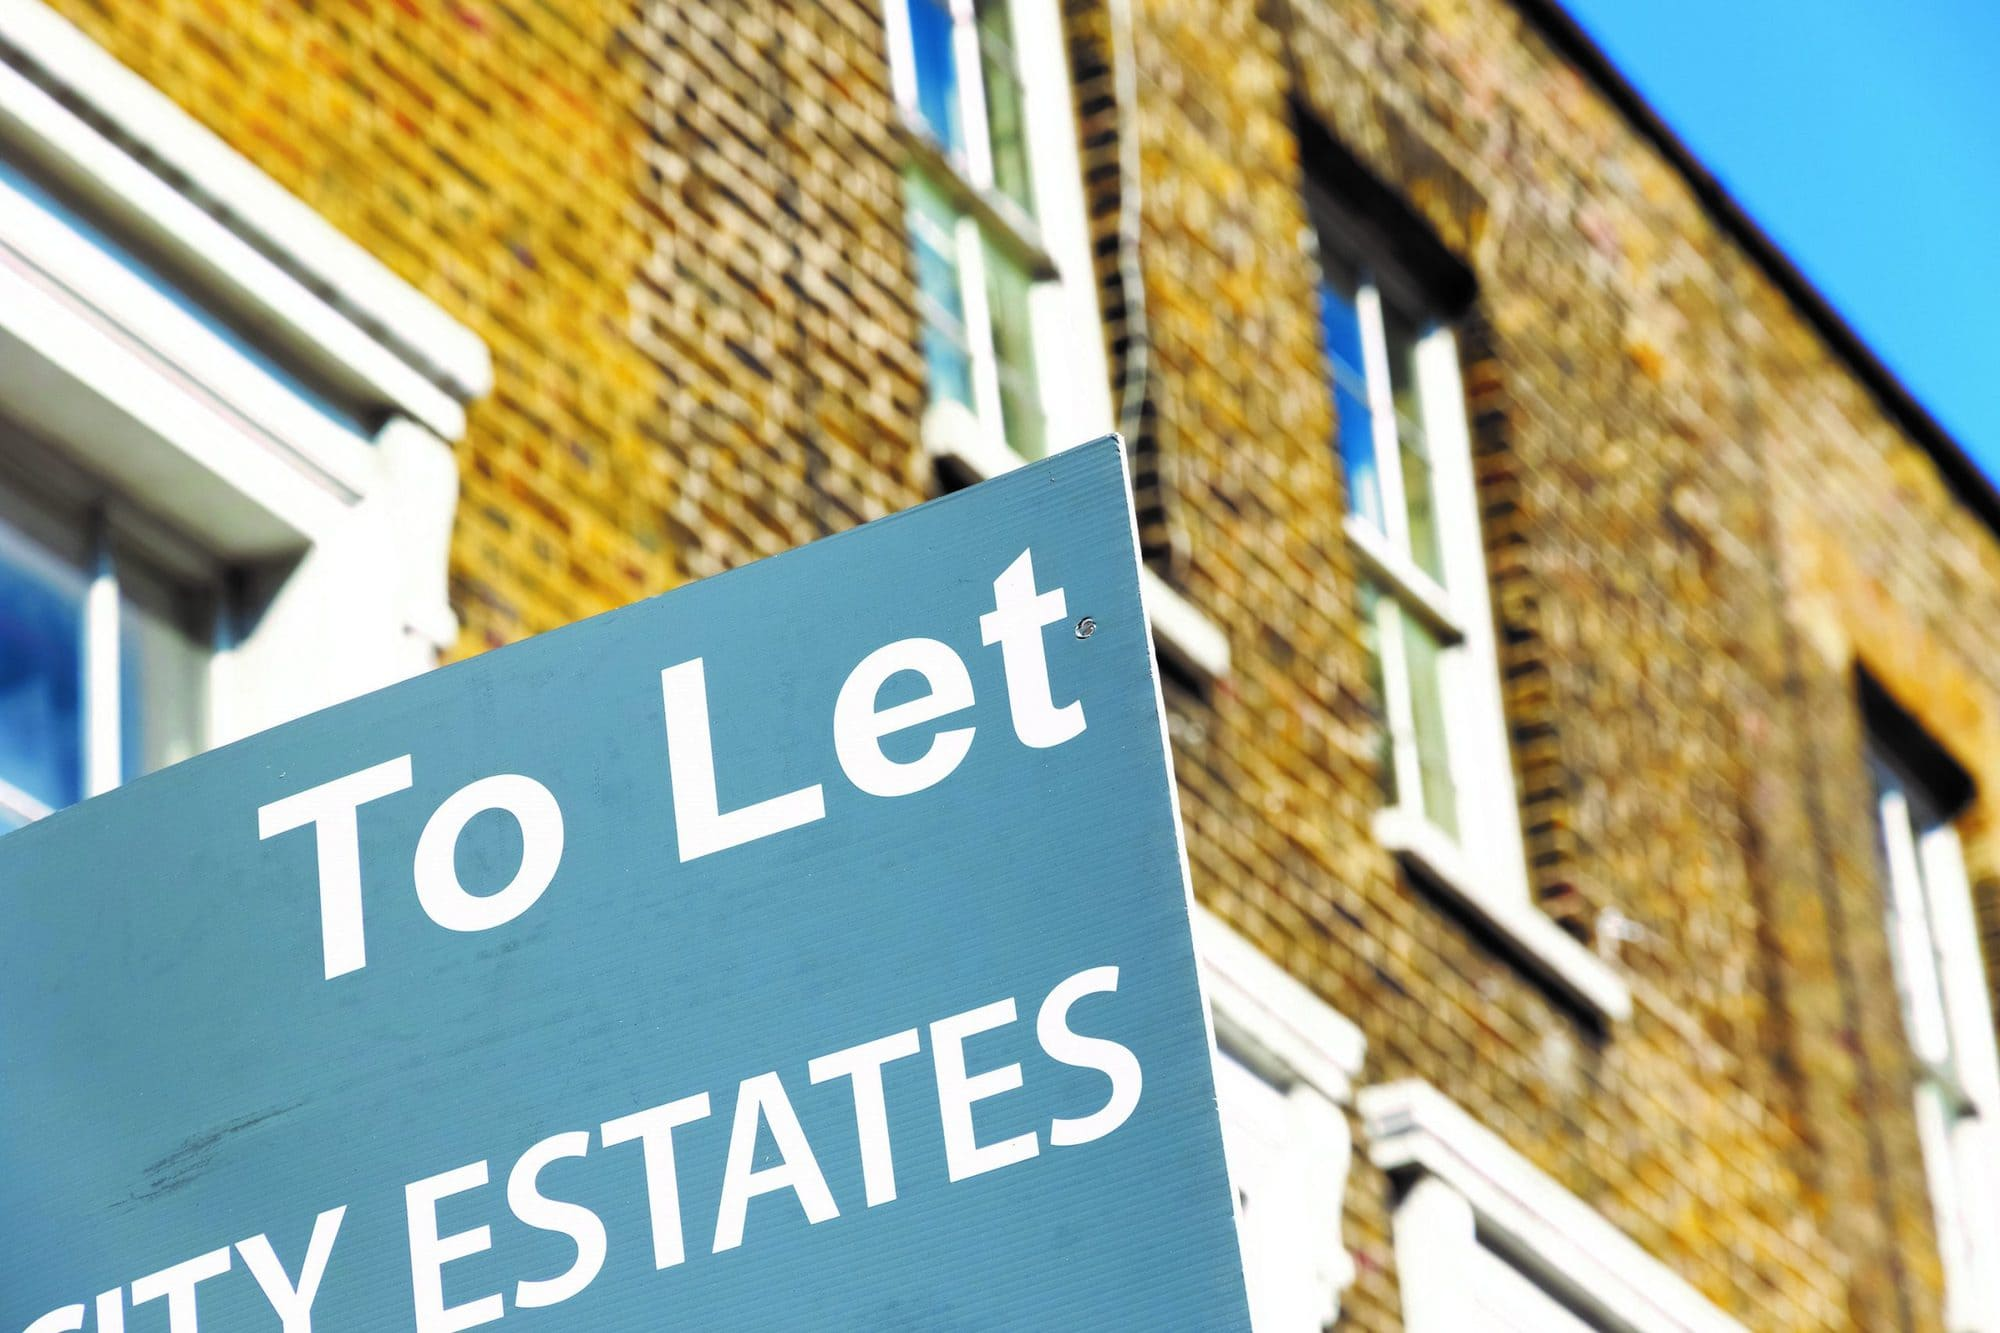 Landlords: Are you ready for Making Tax Digital